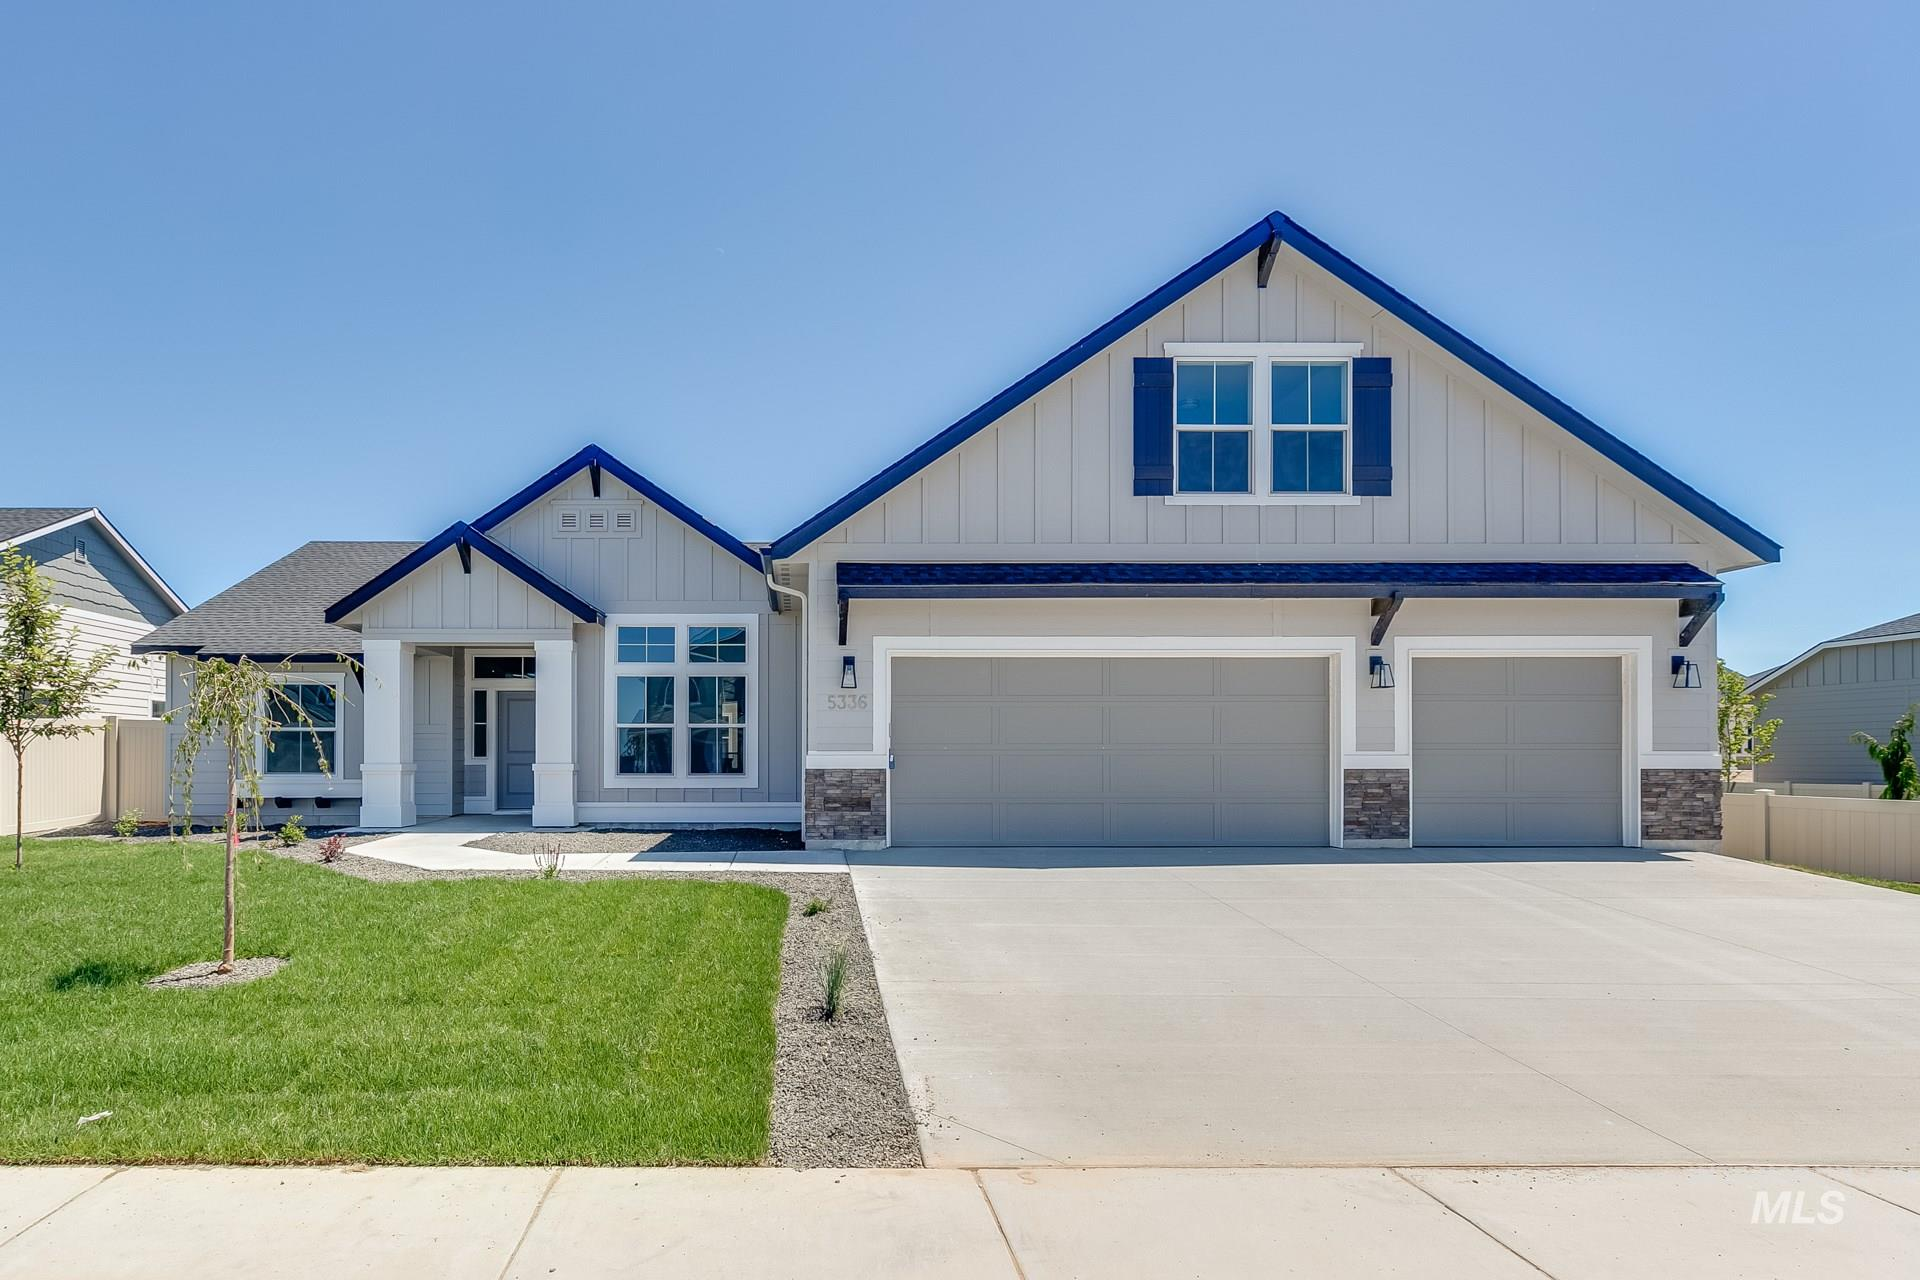 4952 W Sands Basin Dr Property Photo - Meridian, ID real estate listing